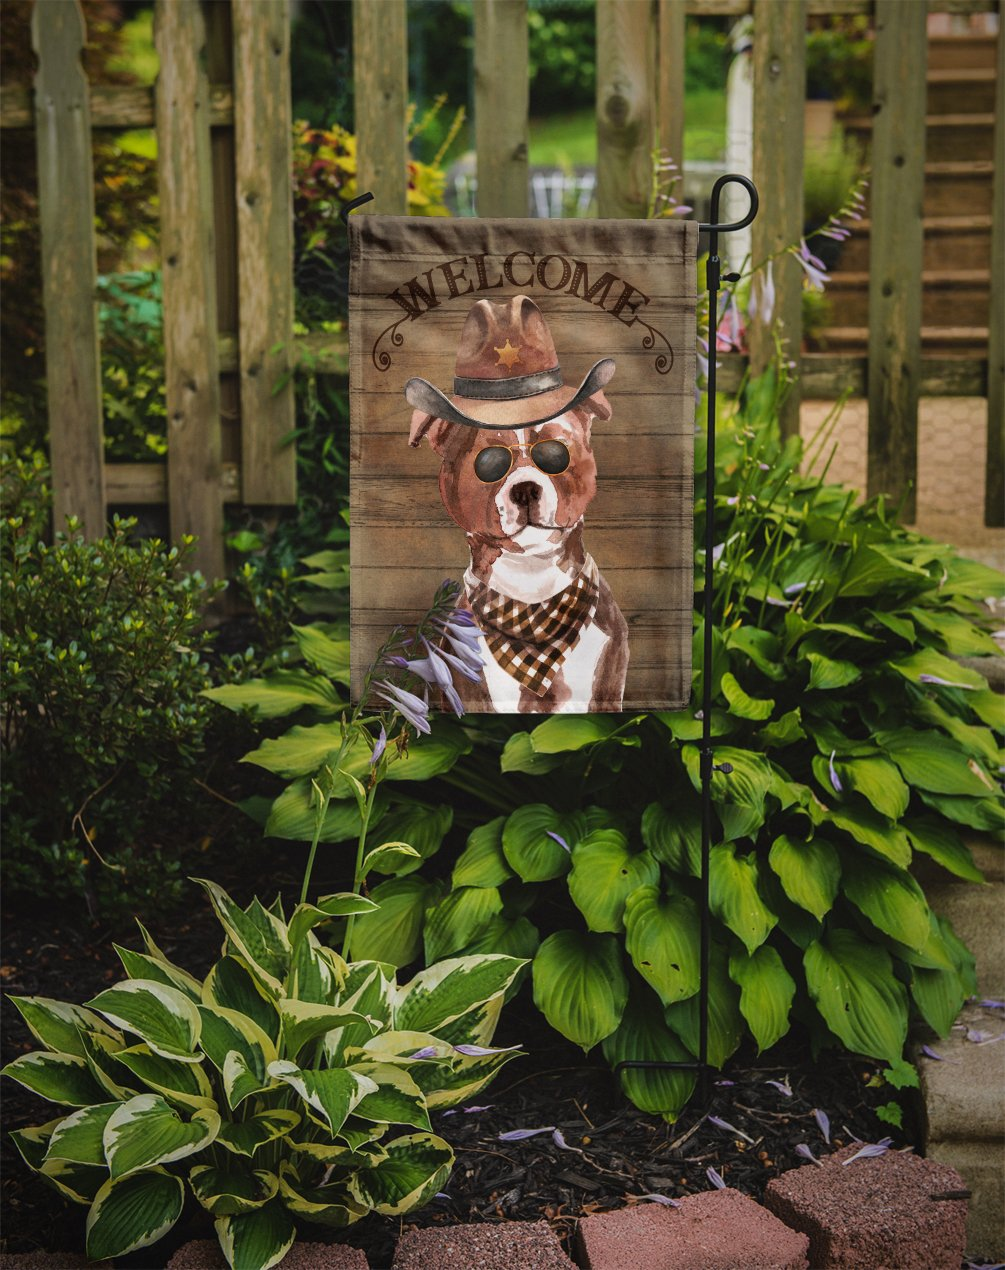 Staffordshire Bull Terrier #3 Country Dog Flag Garden Size CK6367GF by Caroline's Treasures